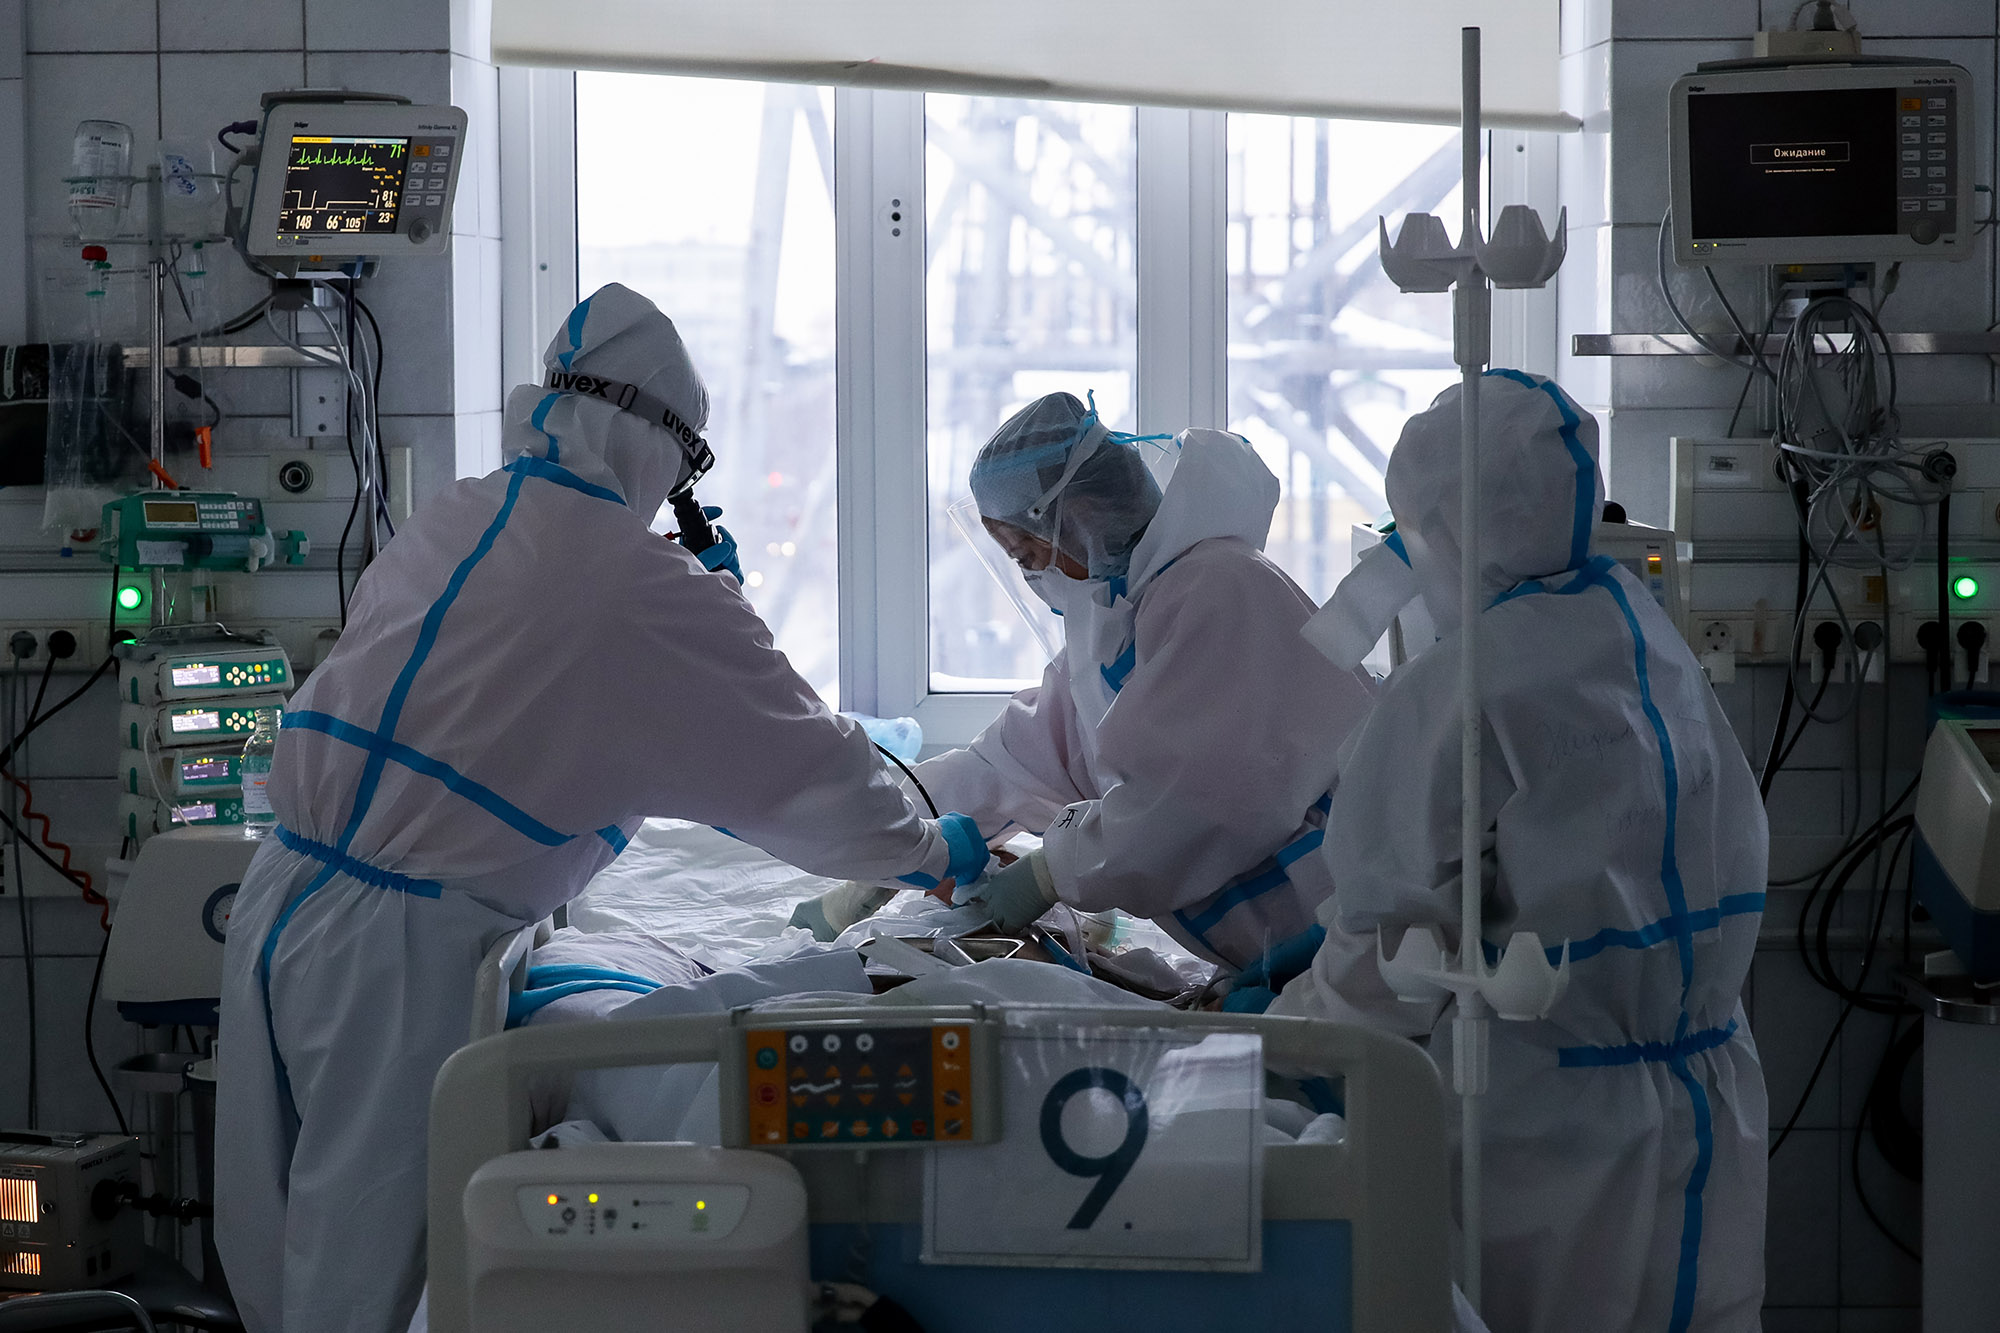 Medical workers tend to a patient with COVID-19 at the Tsivyan Scientific Research Institute of Traumatology and Orthopedics in Novosibirsk, Russia on December 22.